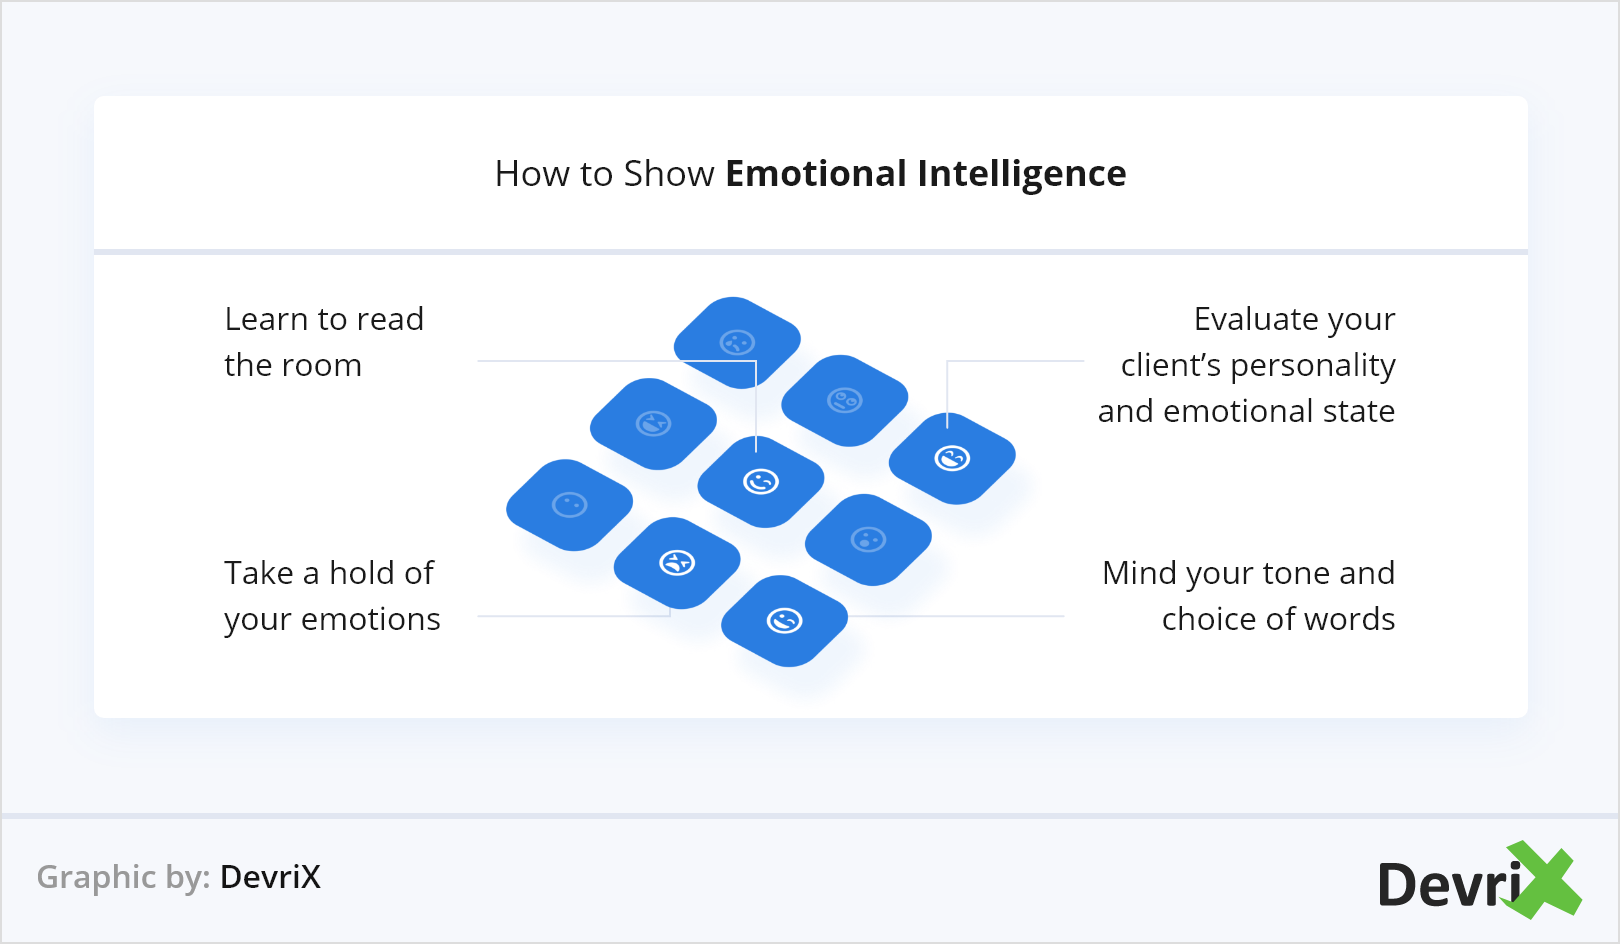 How to Show Emotional Intelligence